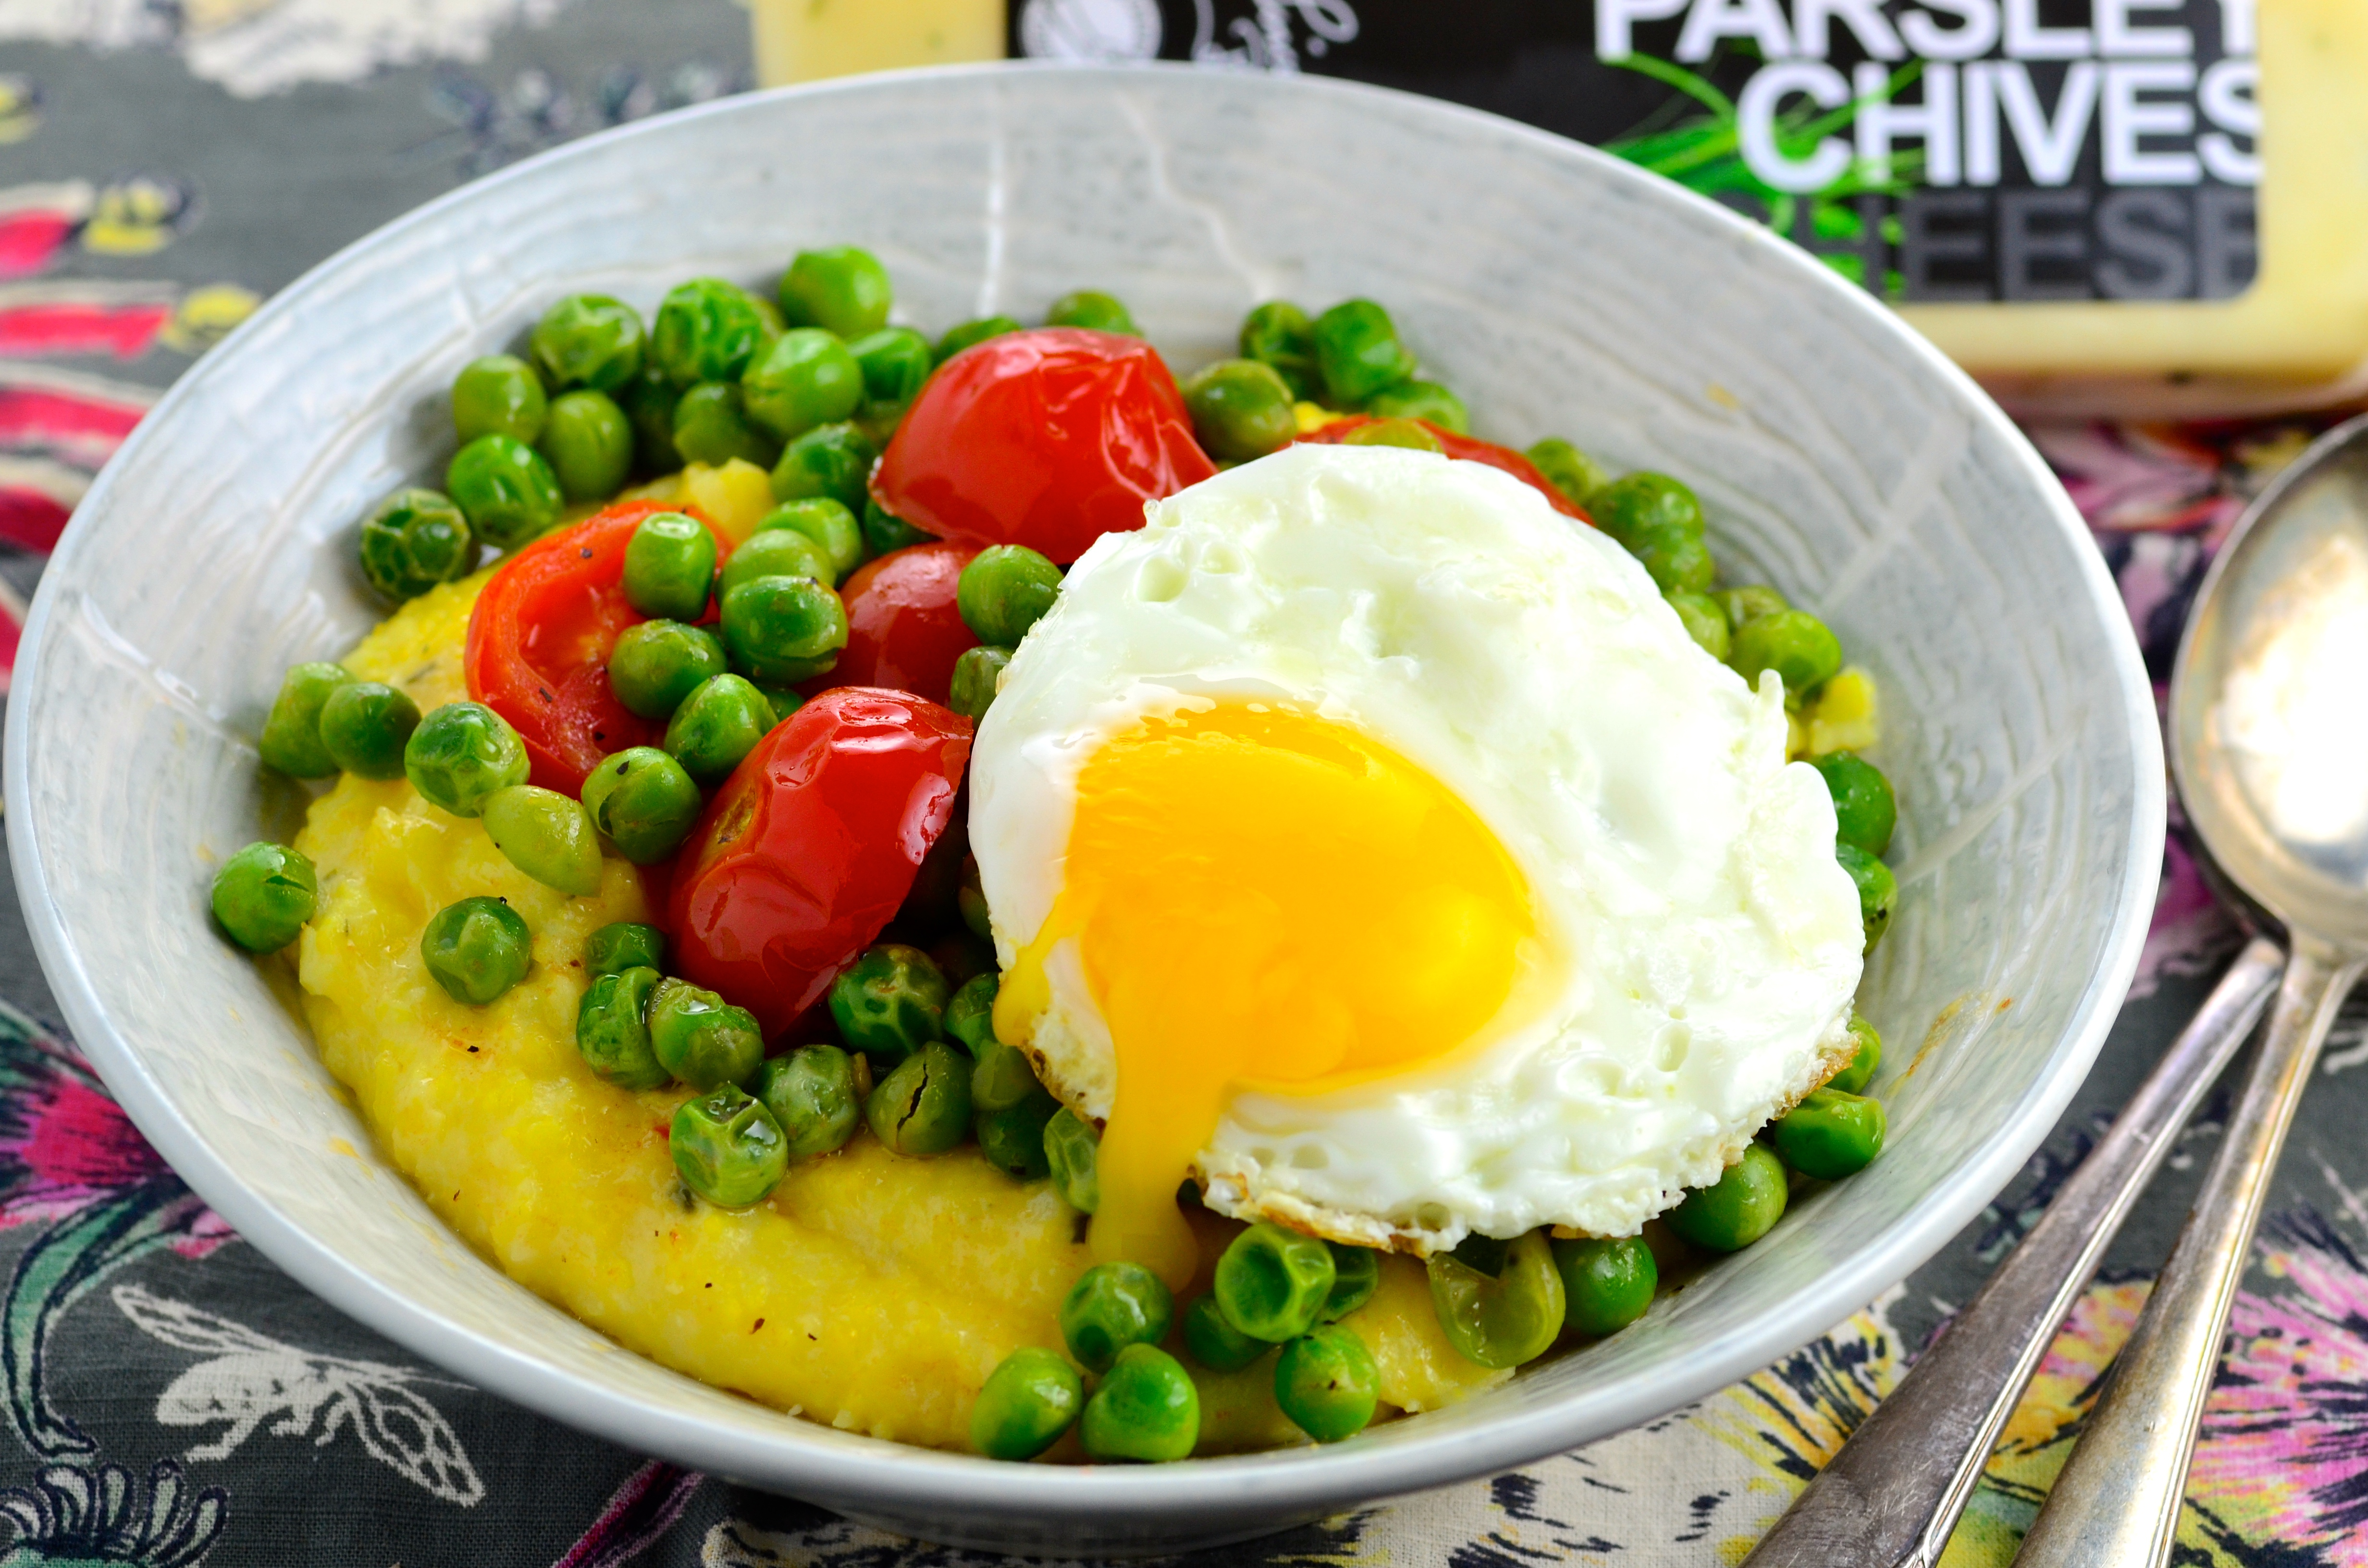 Peas, Cheese & Grits